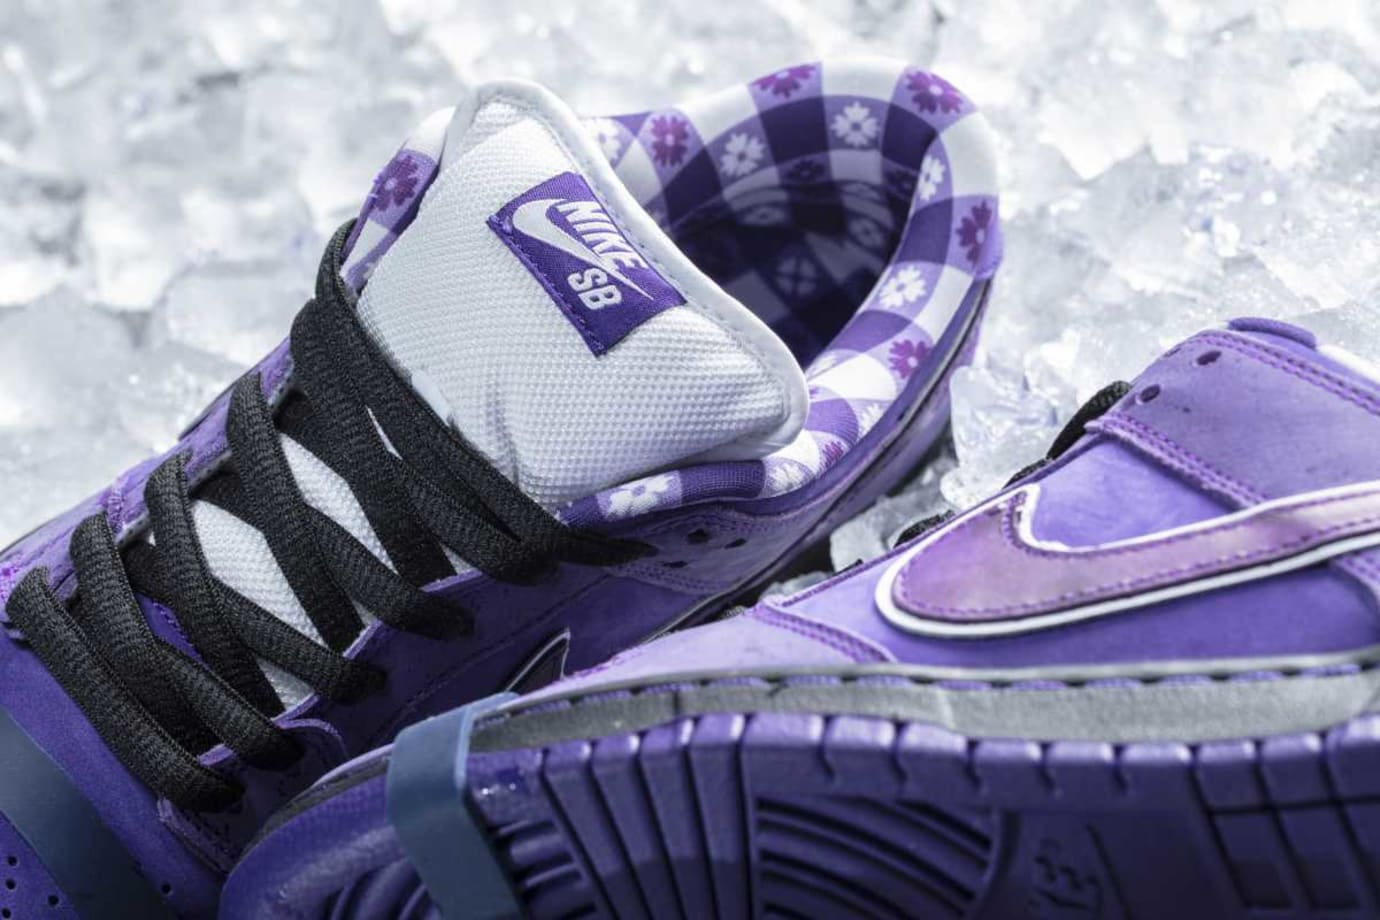 87164d8e090c Image via CNCPTS Concepts x Nike SB Dunk Low Purple Lobster Release Date  Lining